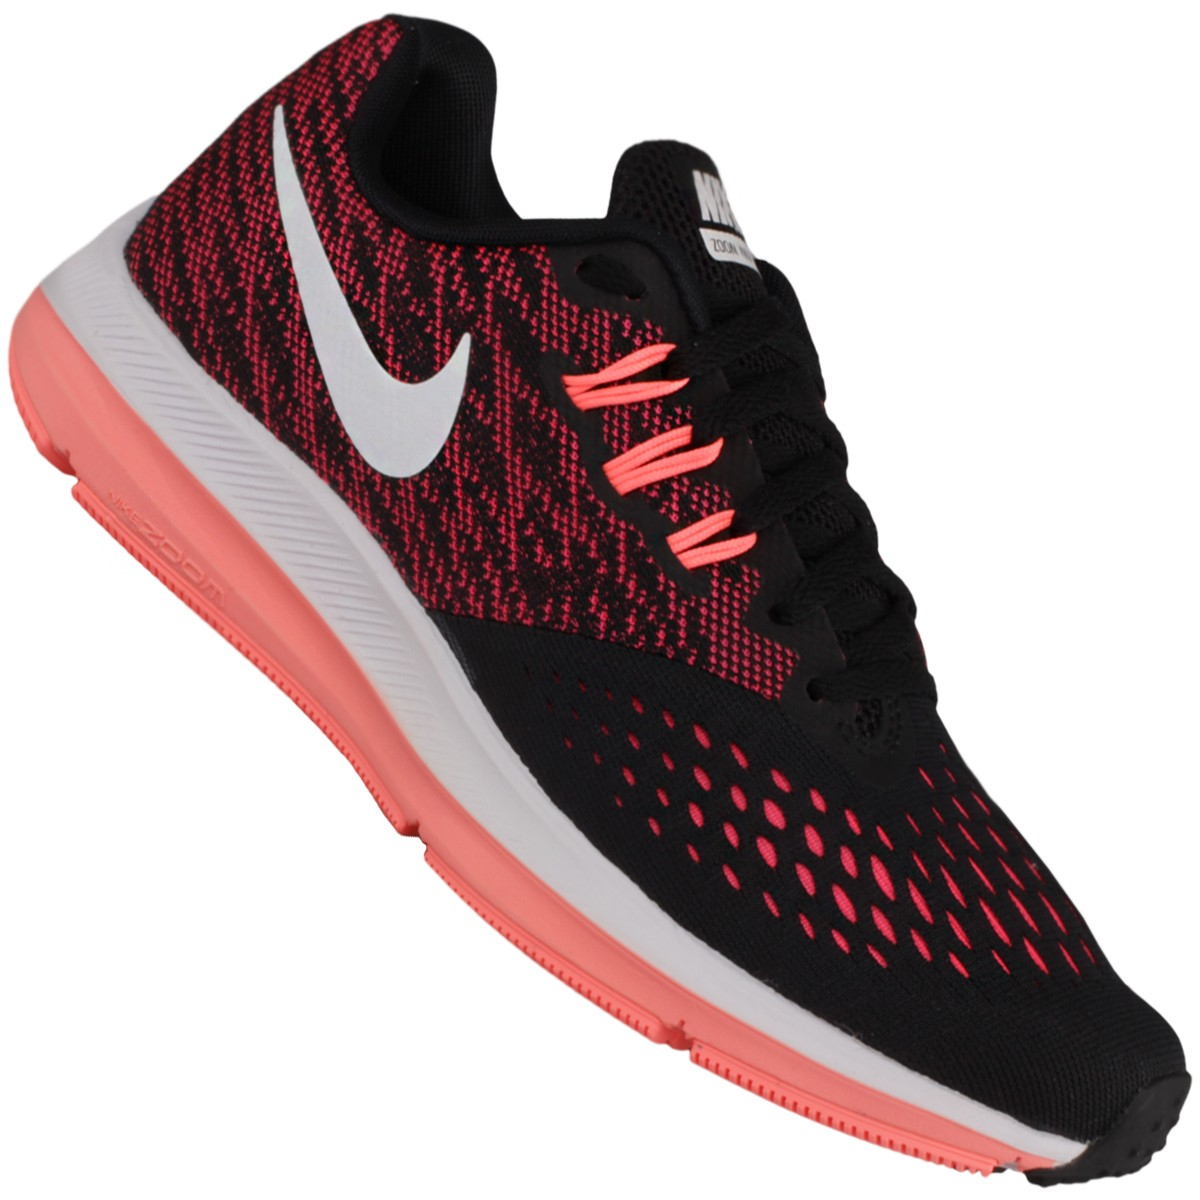 check out 69d8b a0a96 Nike Wmns Zoom winflow 4